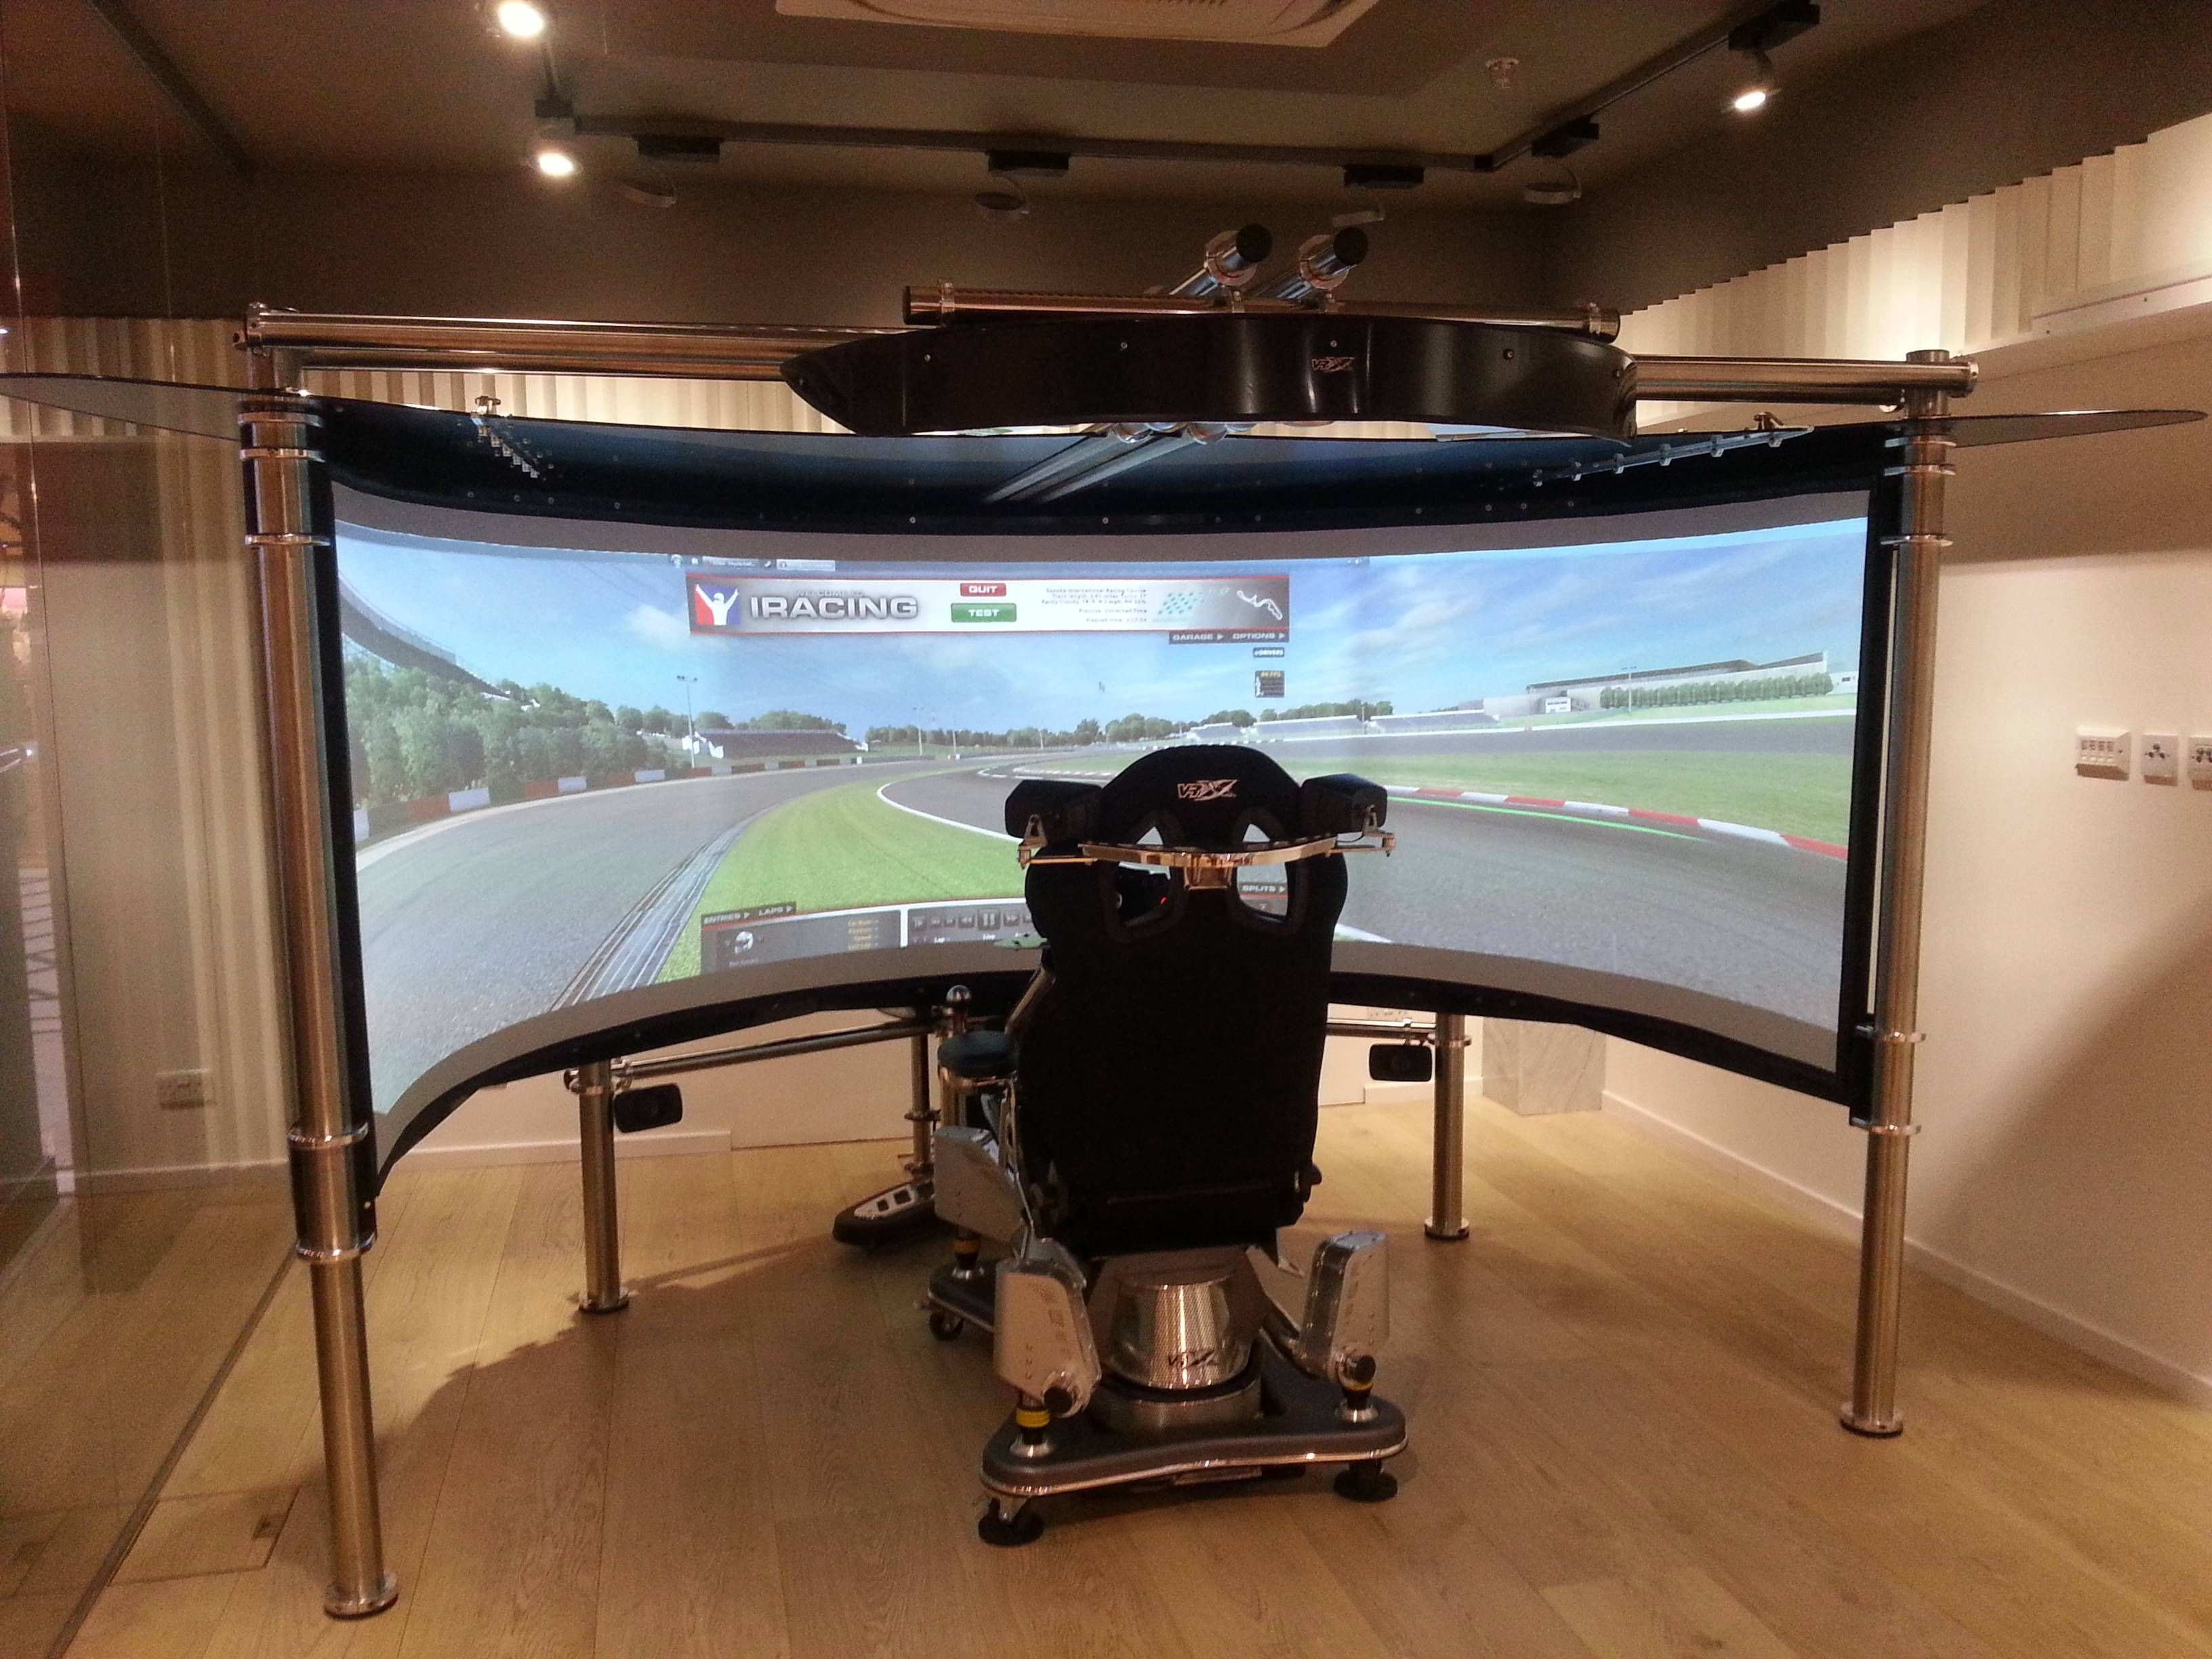 Home flight simulator set up - Elaborate Simulation Racing Setup